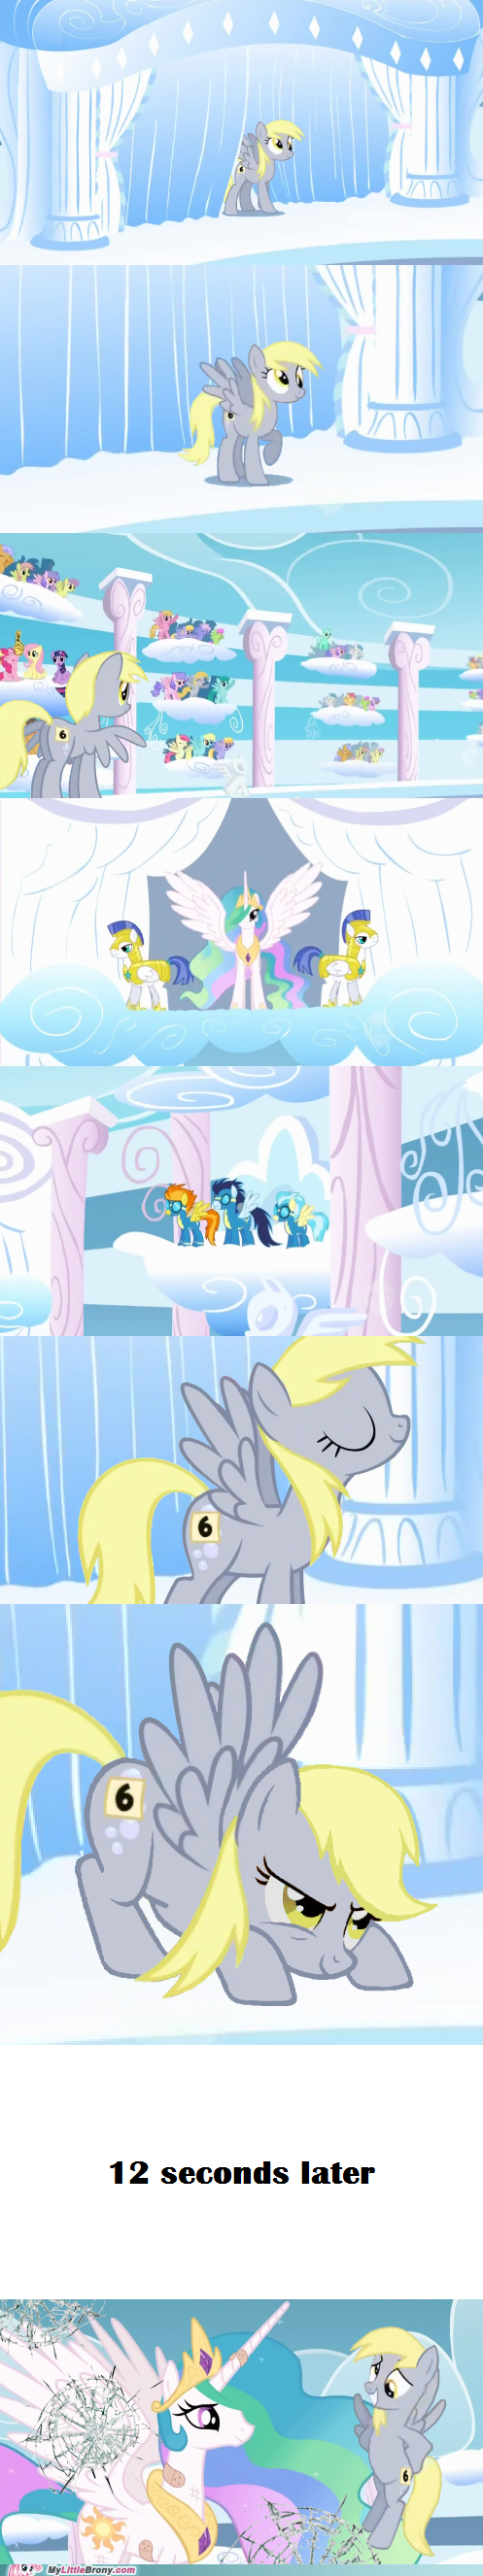 derpy hooves derp comic competition - 6680732160